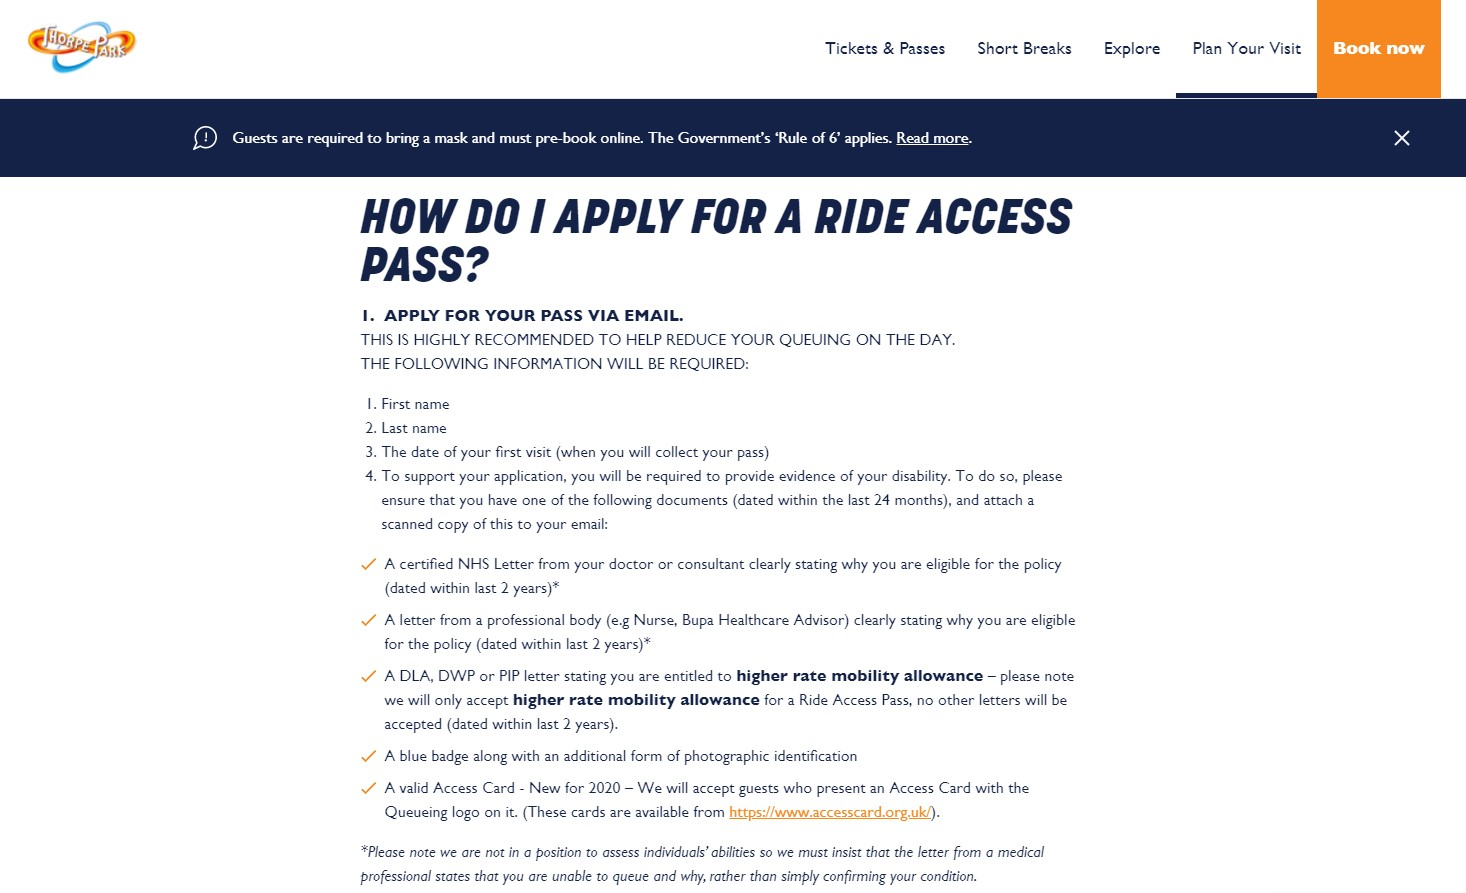 ride access pass application for thorpe park part 1